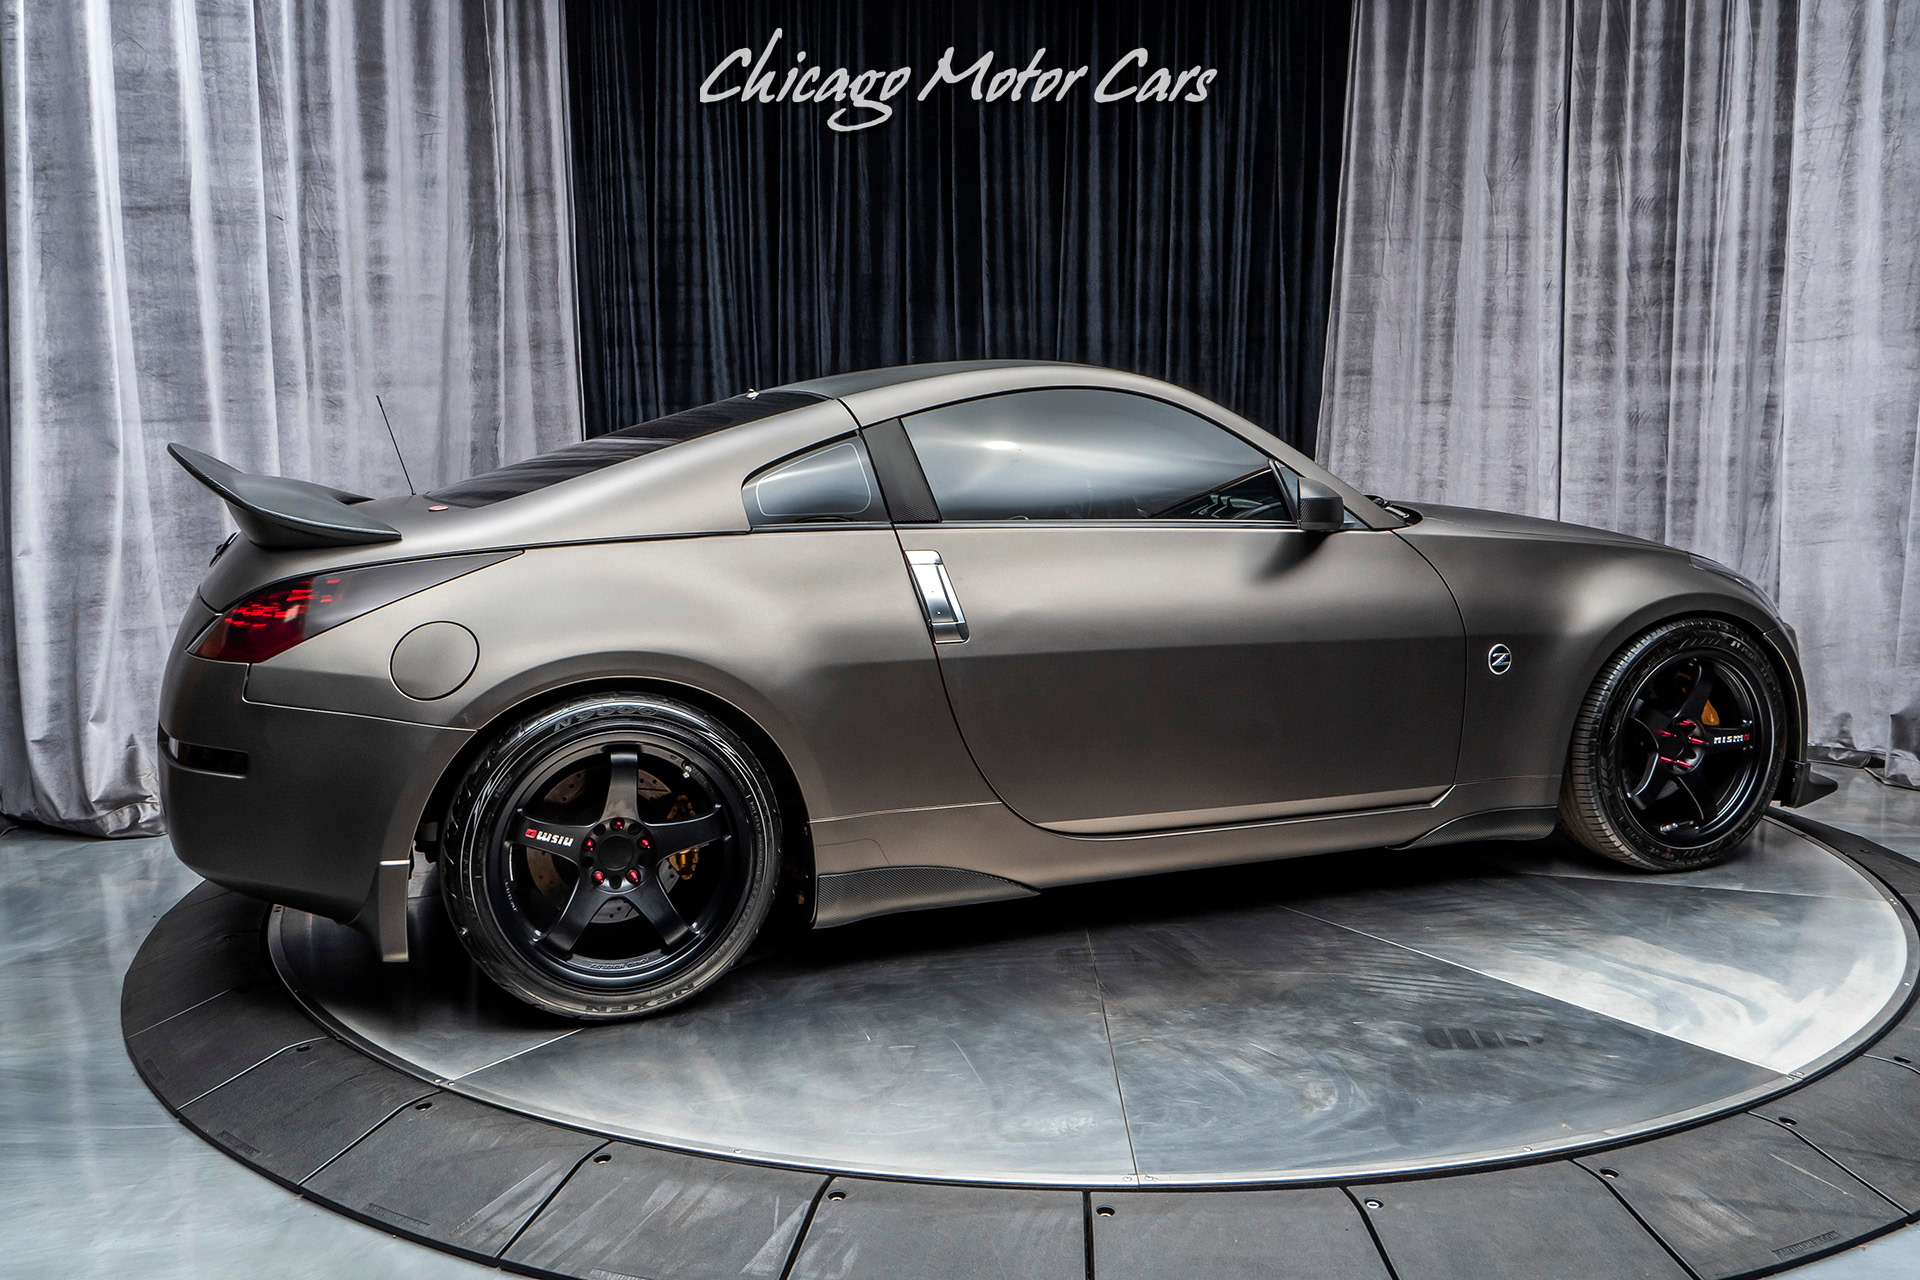 350z nissan 2006 coupe track upgrades loaded cars